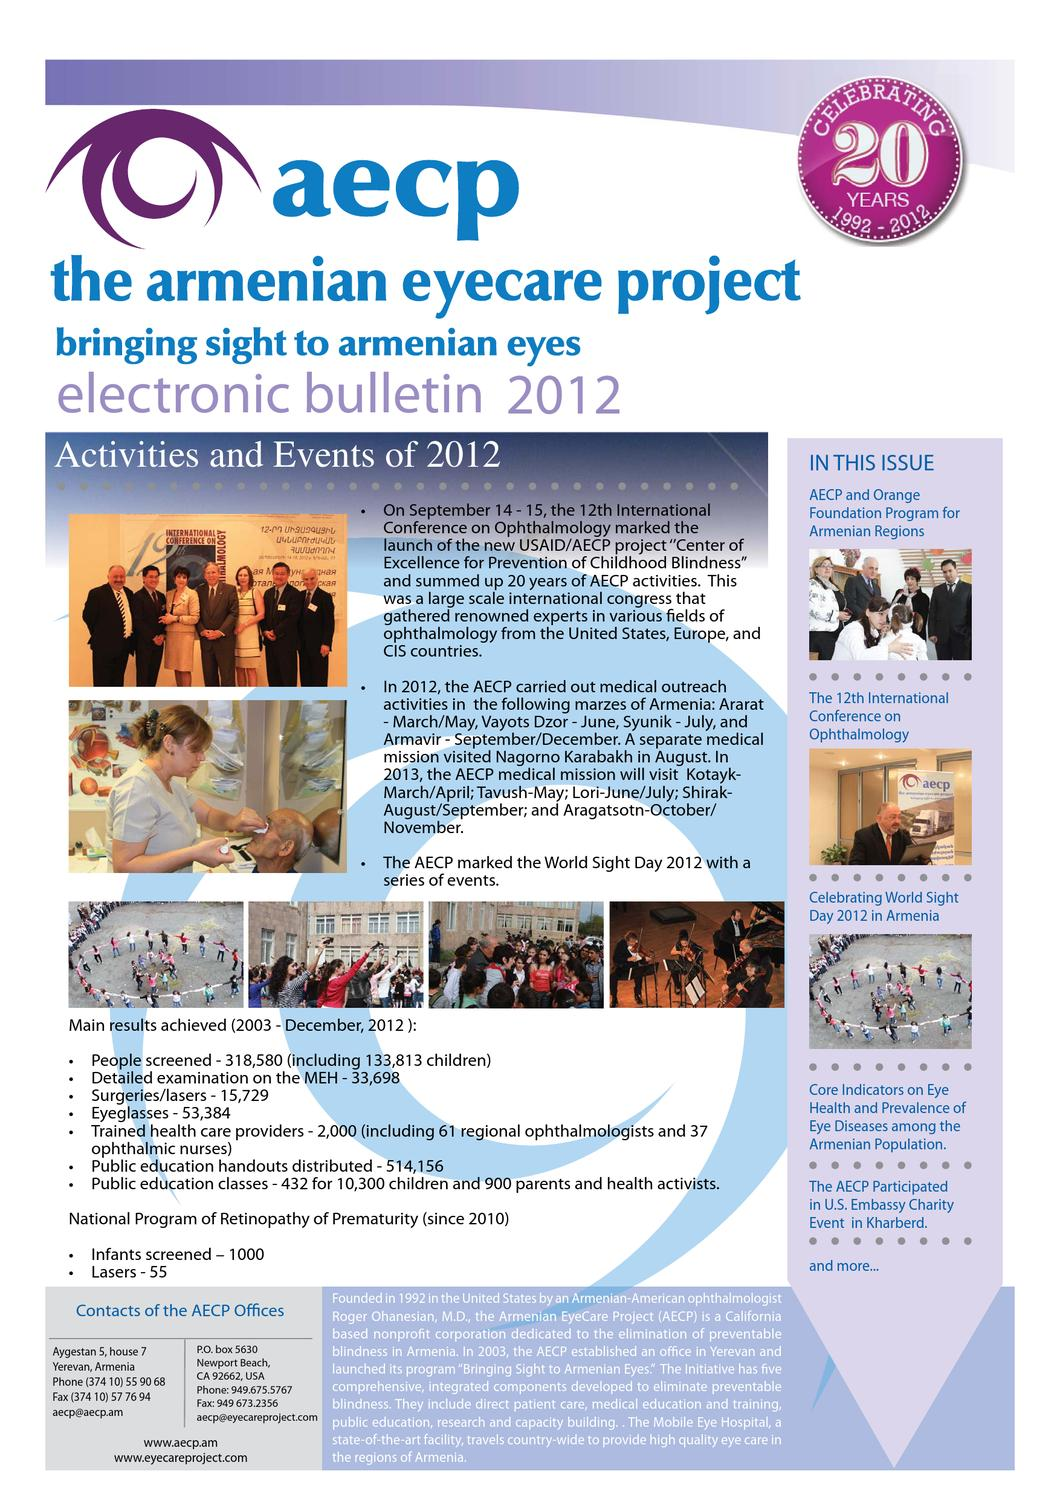 Aecp Electronic Bulletin 2012 By The Armenian Eyecare Project Issuu Electronics Projects April 2013